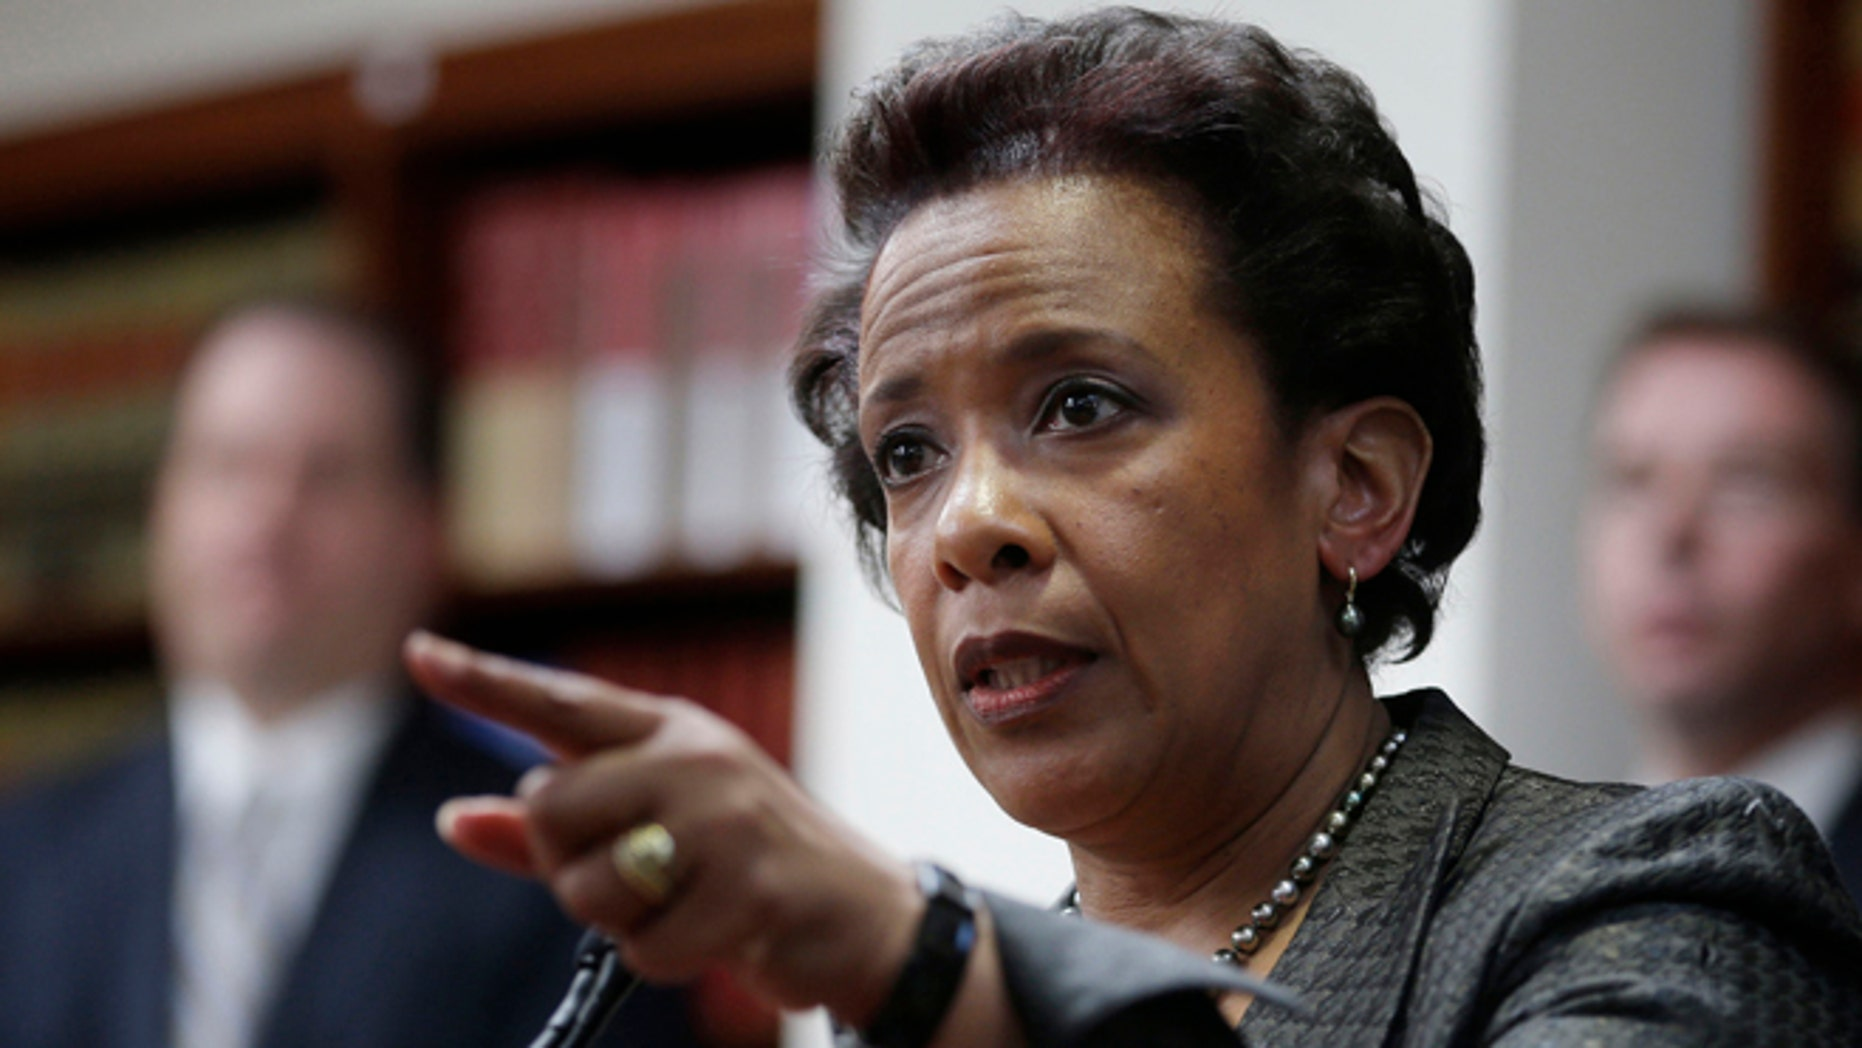 April 28, 2014: Loretta Lynch, U.S. Attorney for the Eastern District of New York, speaks during a news conference in New York. President Obama chose Loretta Lynch as attorney general on Nov. 7, 2014, which would make her the first black woman in the position. (AP/Seth Wenig, File)